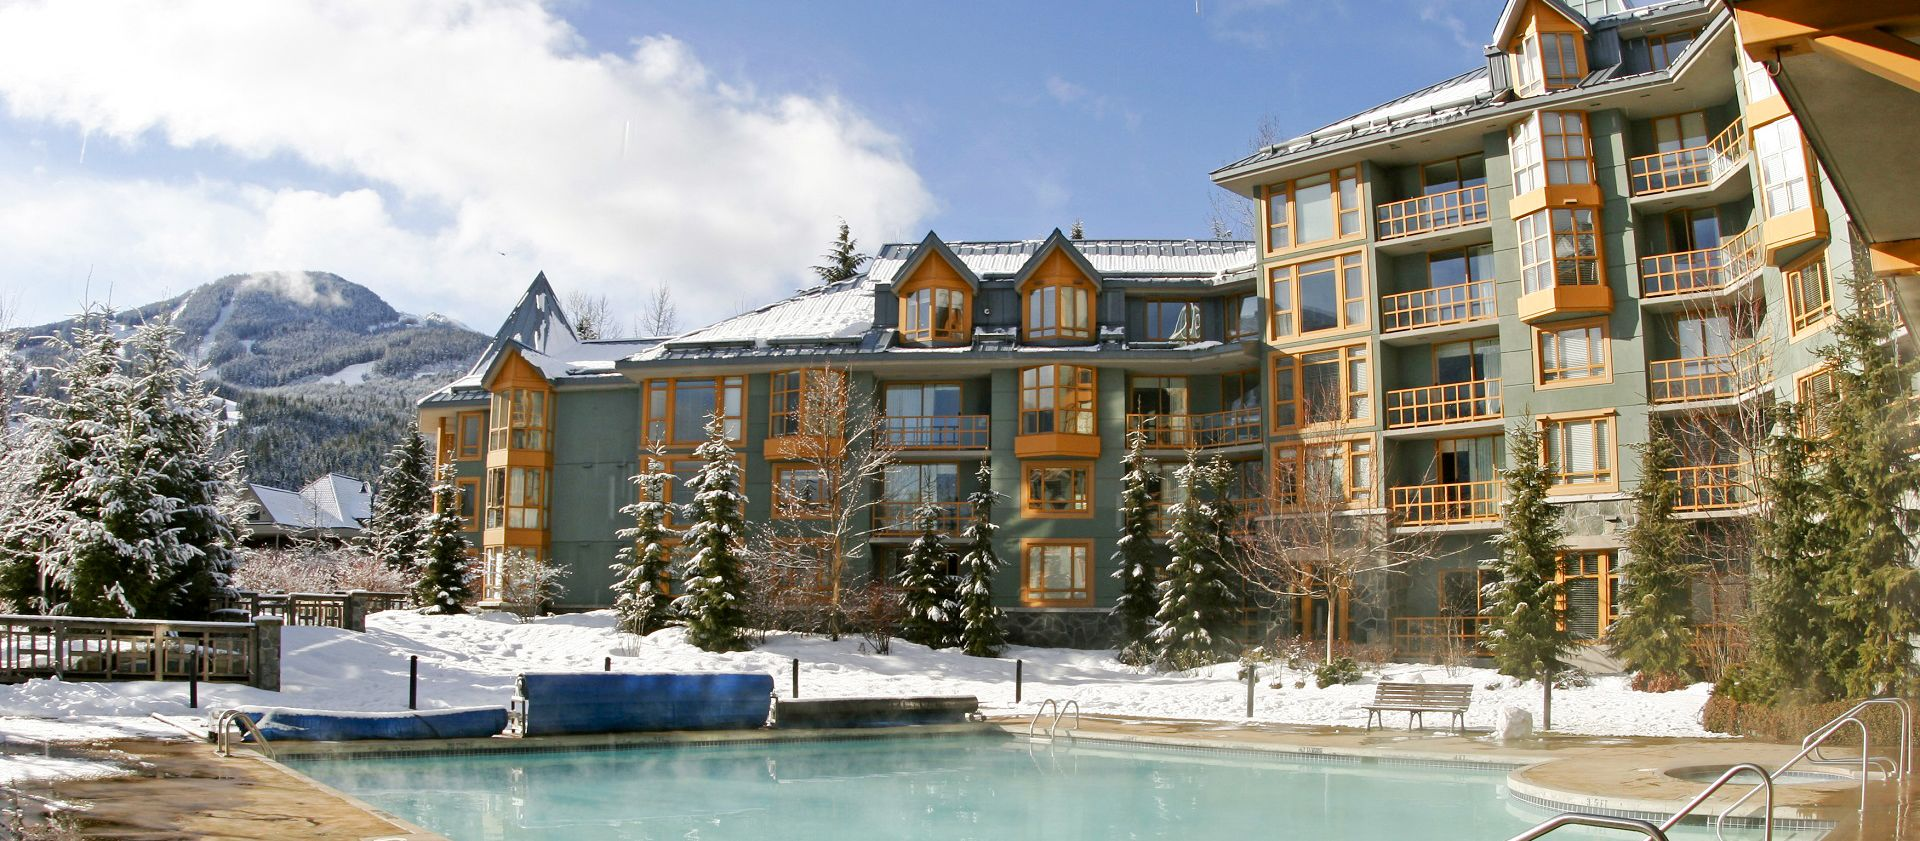 Cascade Lodge in Whistler